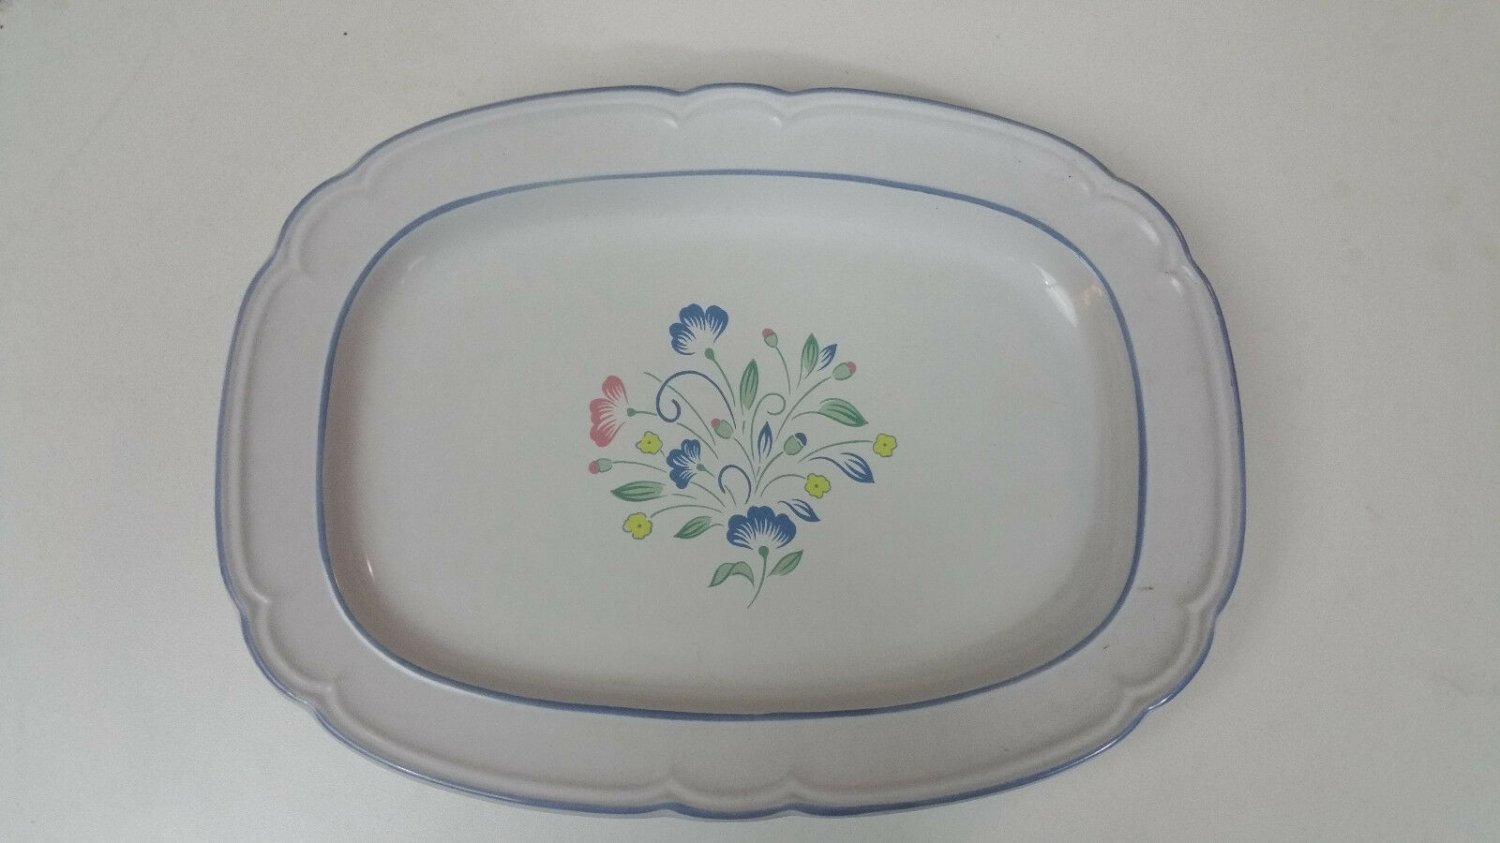 Floral Expressions hand decorated stoneware platter made in Japan